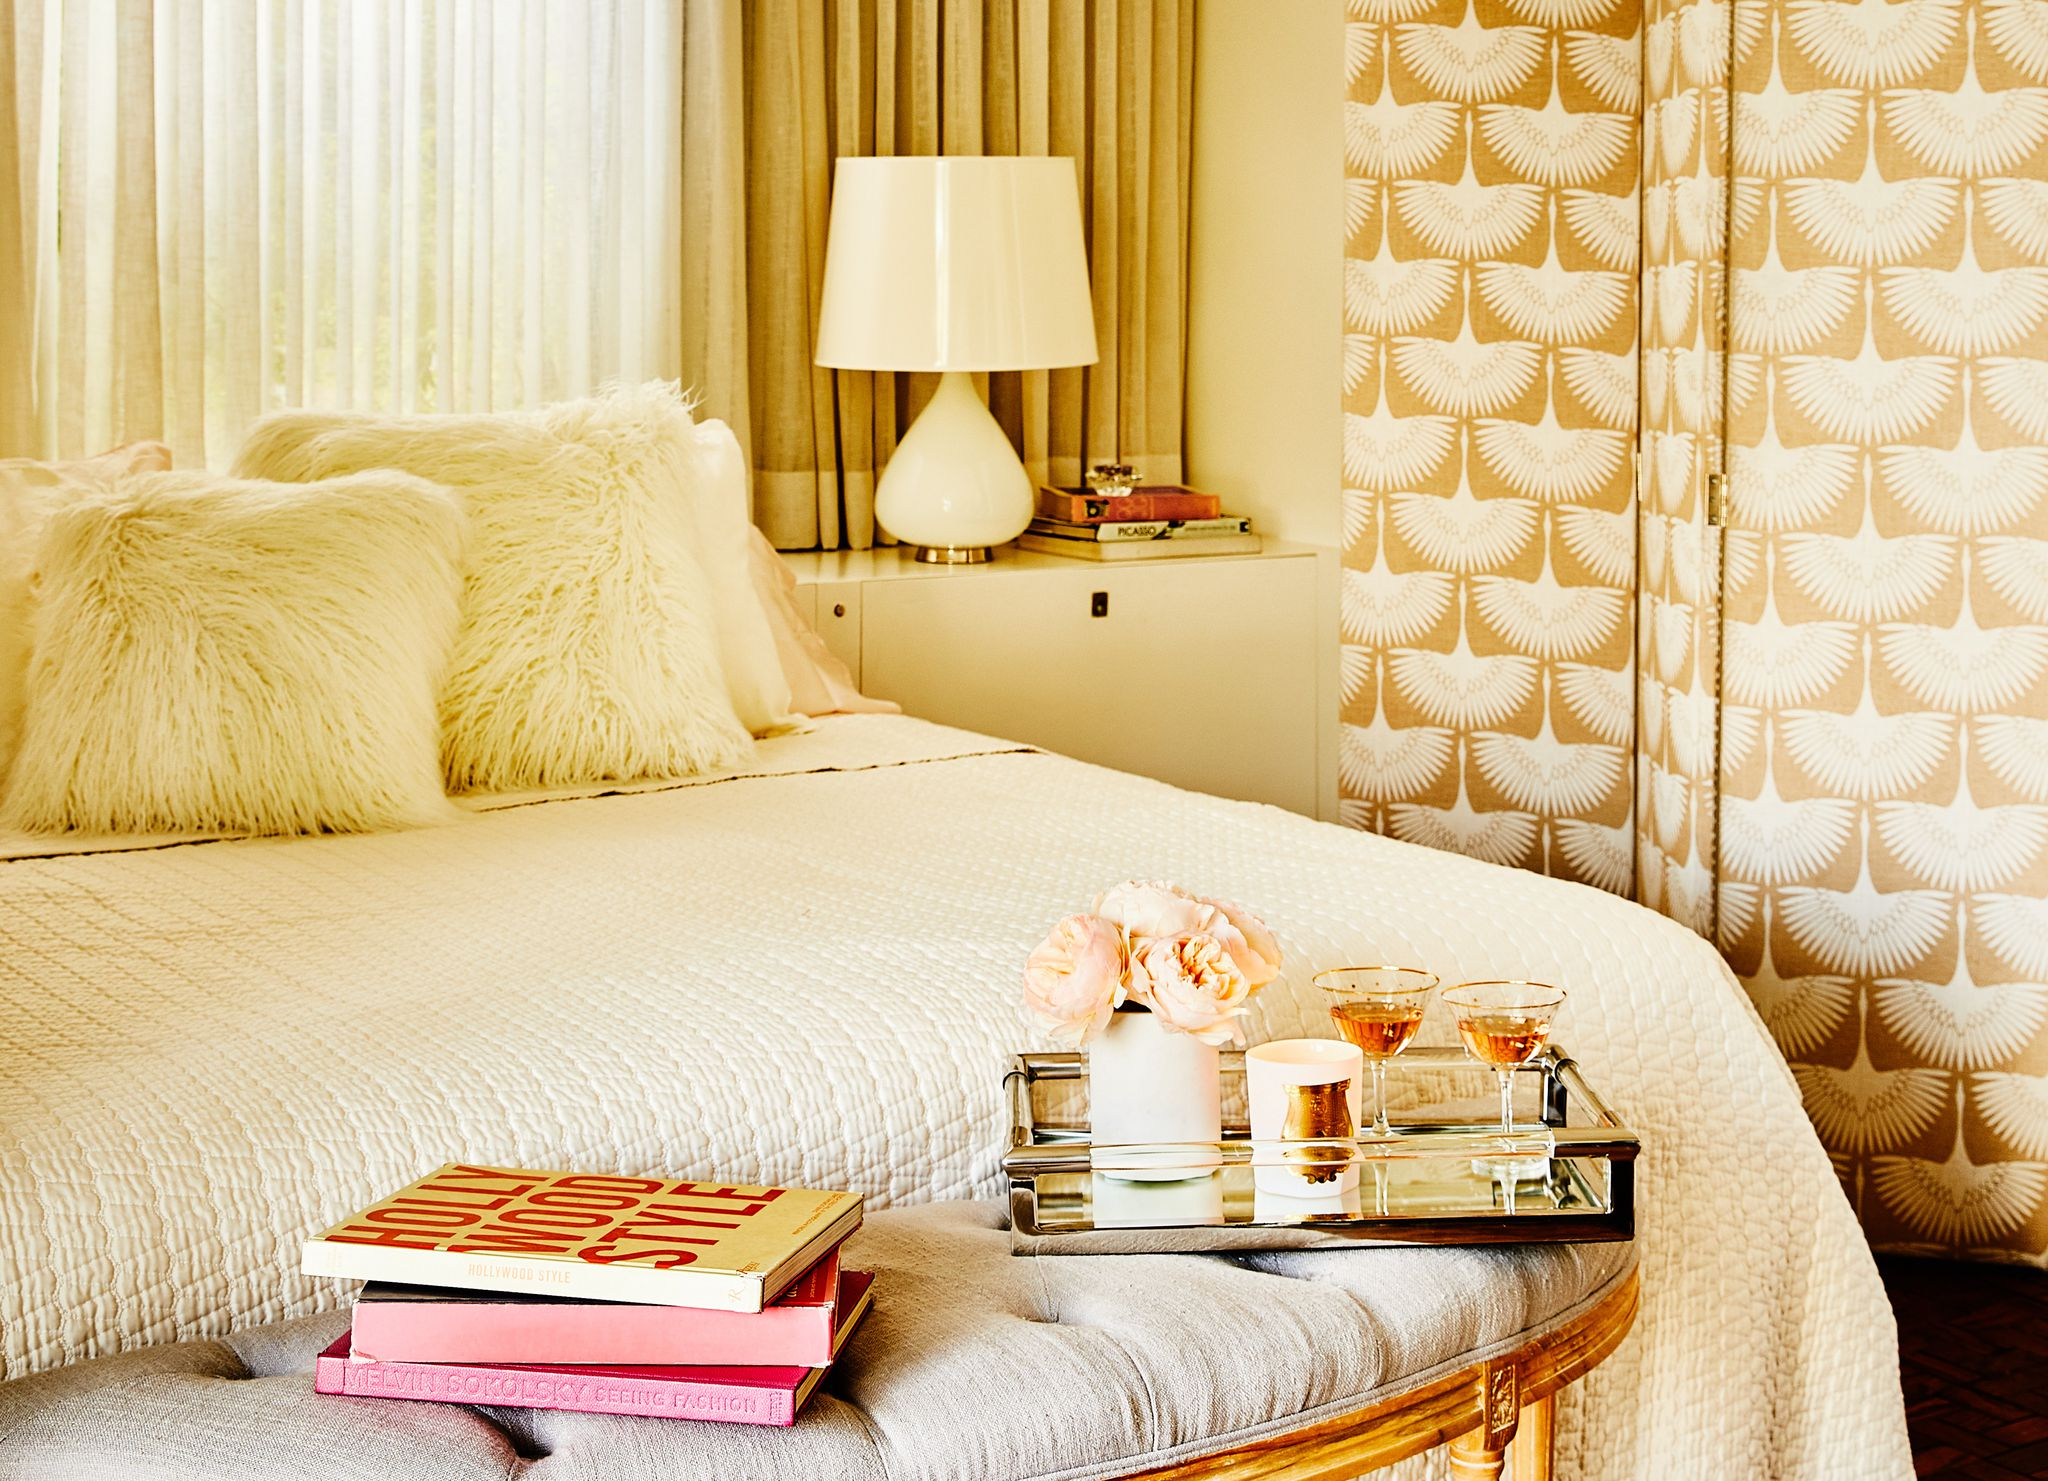 Make your bedroom an oasis